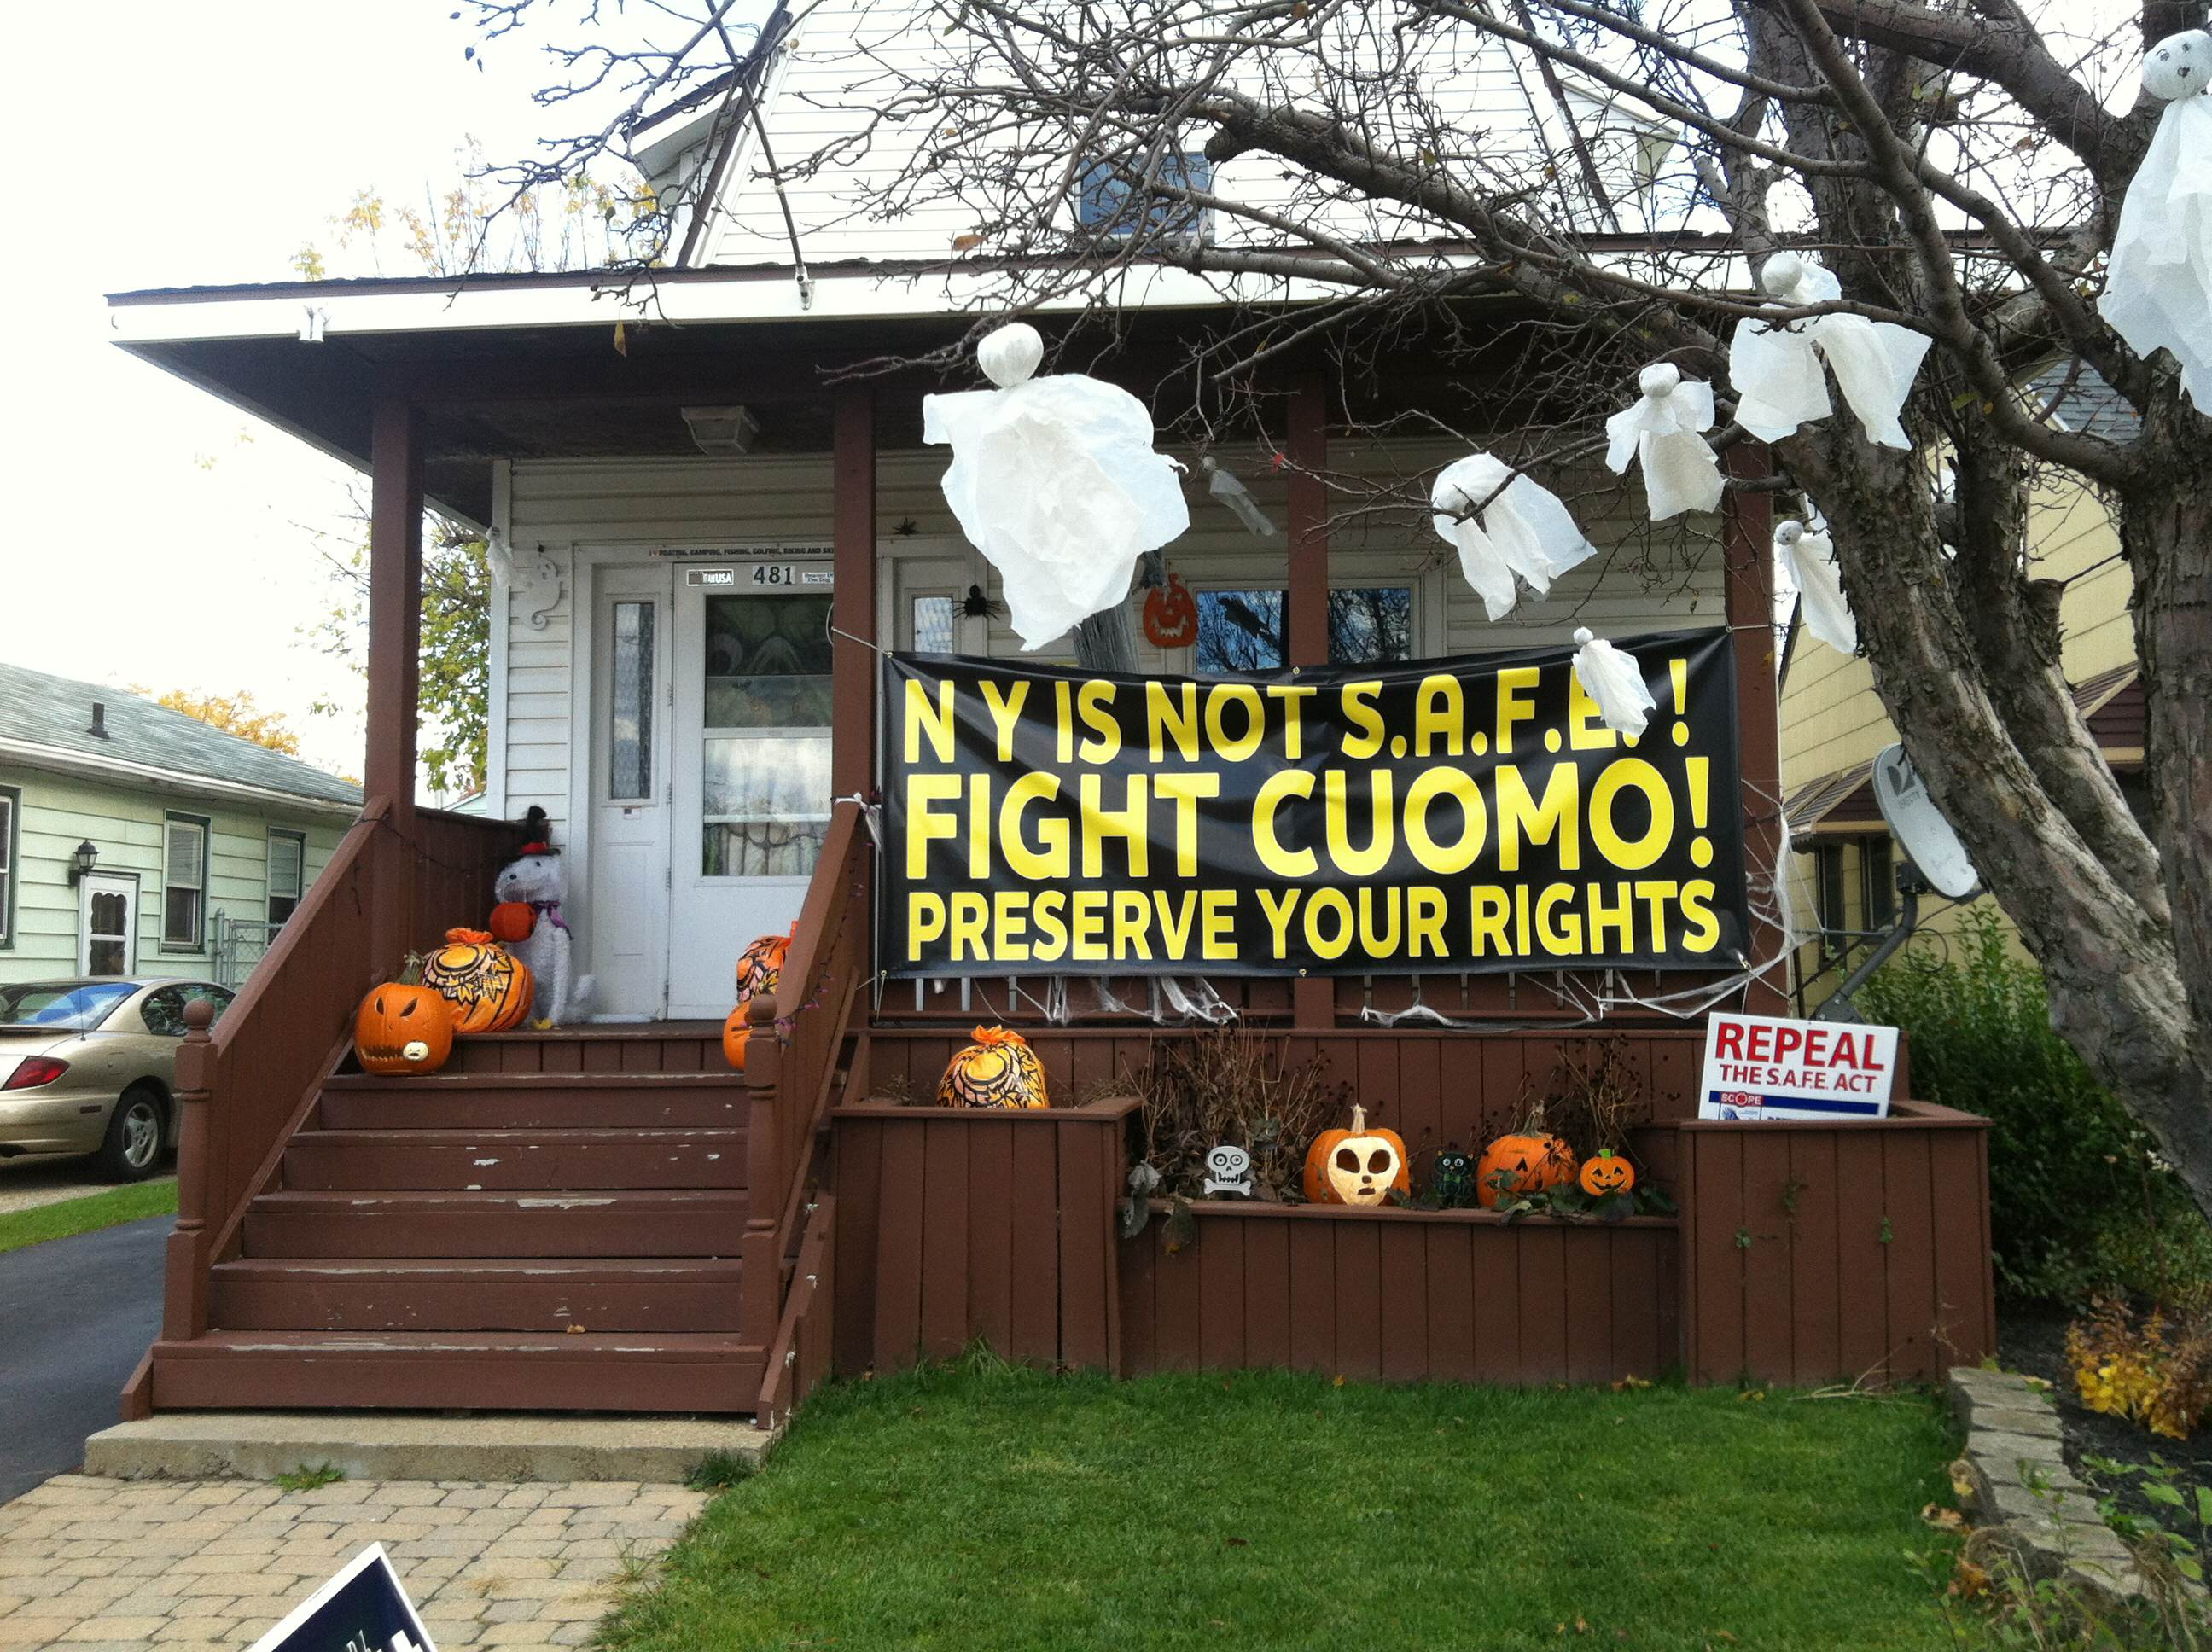 The City of Niagara Falls has determined that two large, anti-Andrew Cuomo signs, including this one in front of a house on Hyde Park Boulevard, do not violate any city ordinances. (Aaron Besecker/staff)